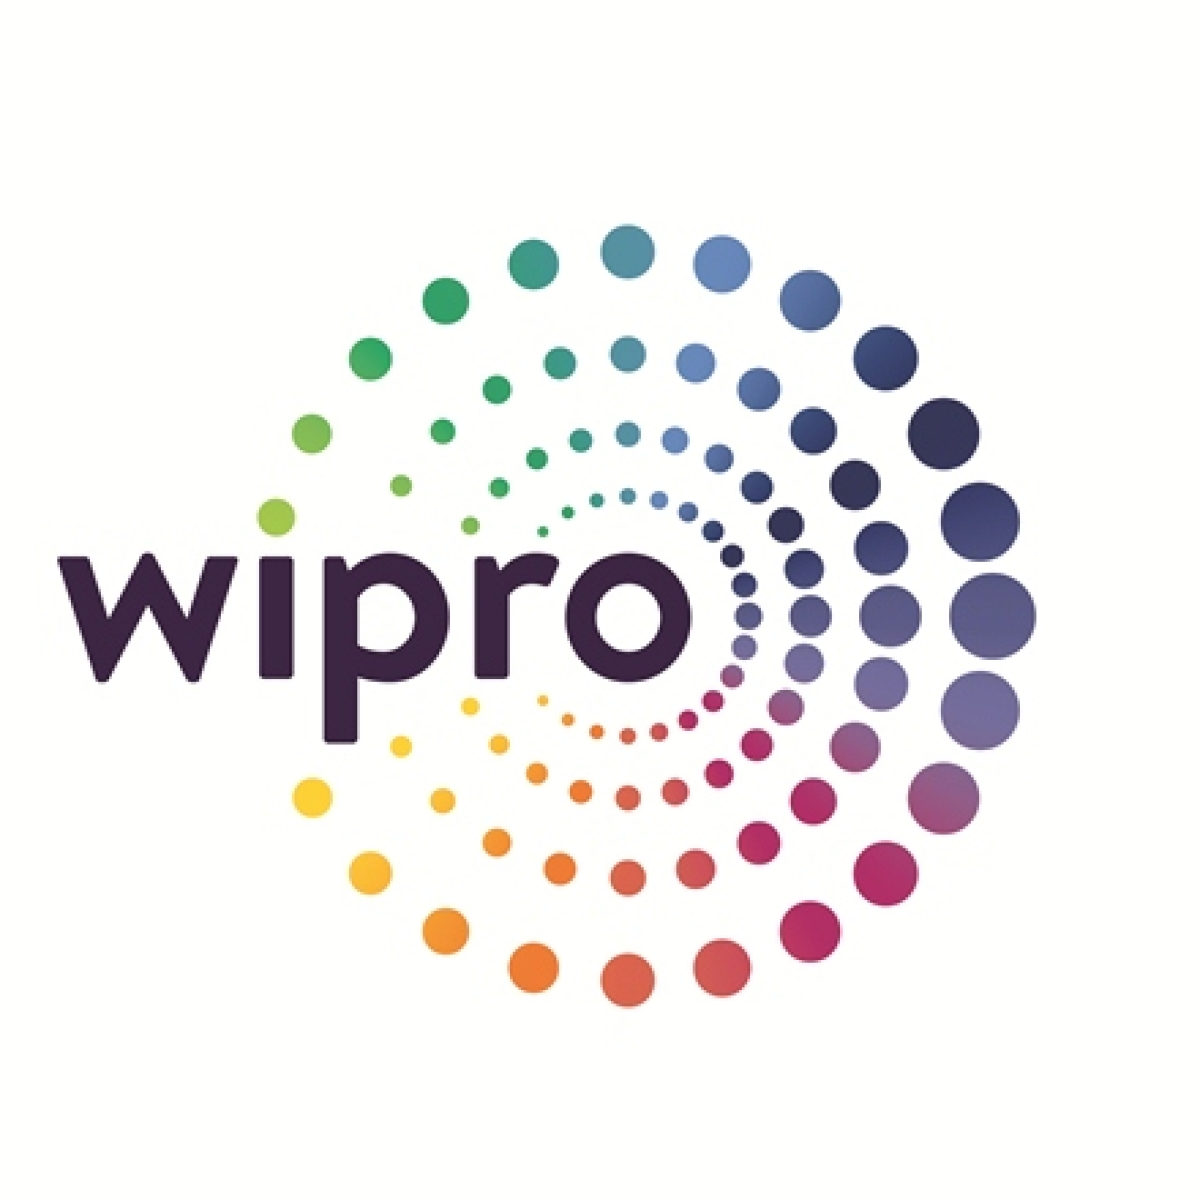 Philanthropy amid pandemic: Wipro to set up 450 bed COVID-19 Hospital in Pune